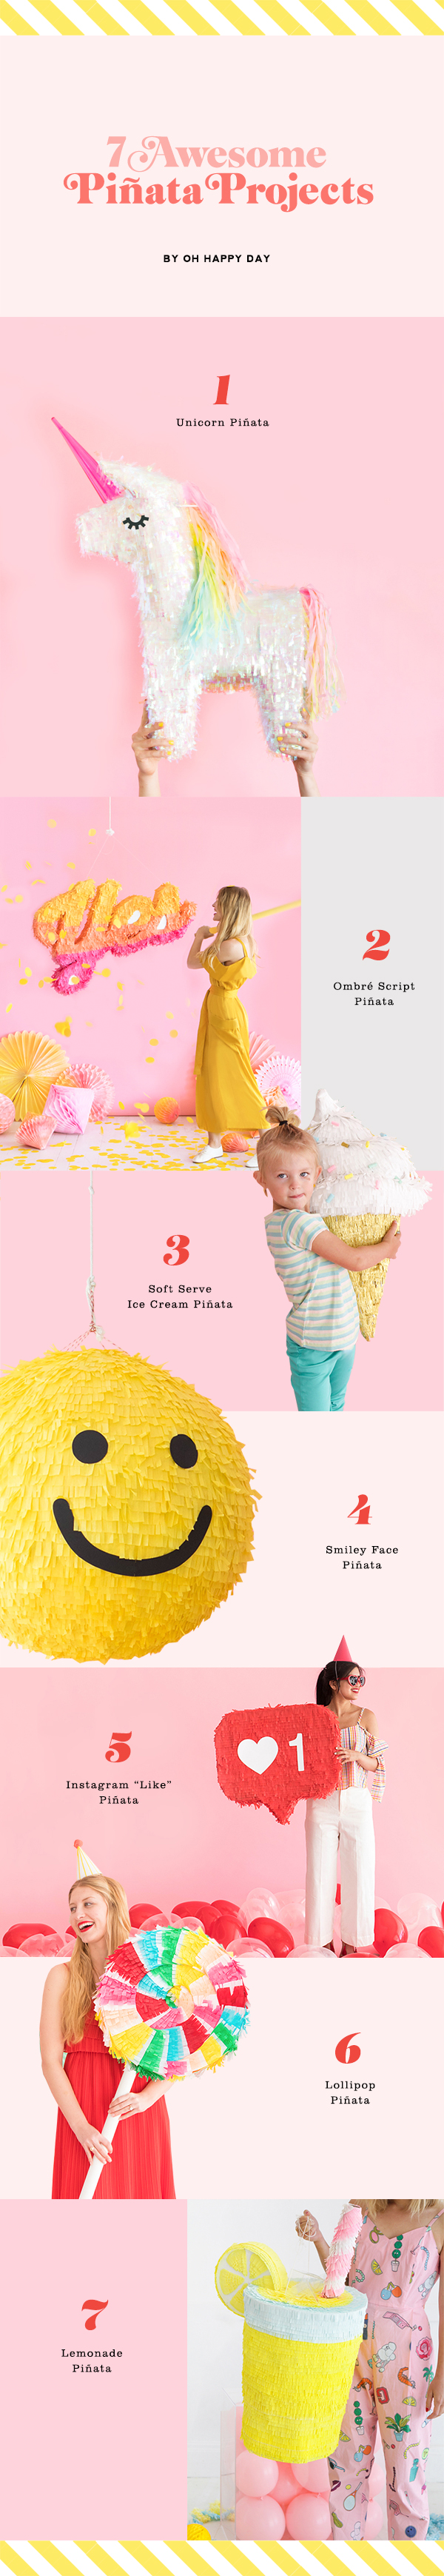 7 Awesome Pinata Projects | Oh Happy Day! | Bloglovin'